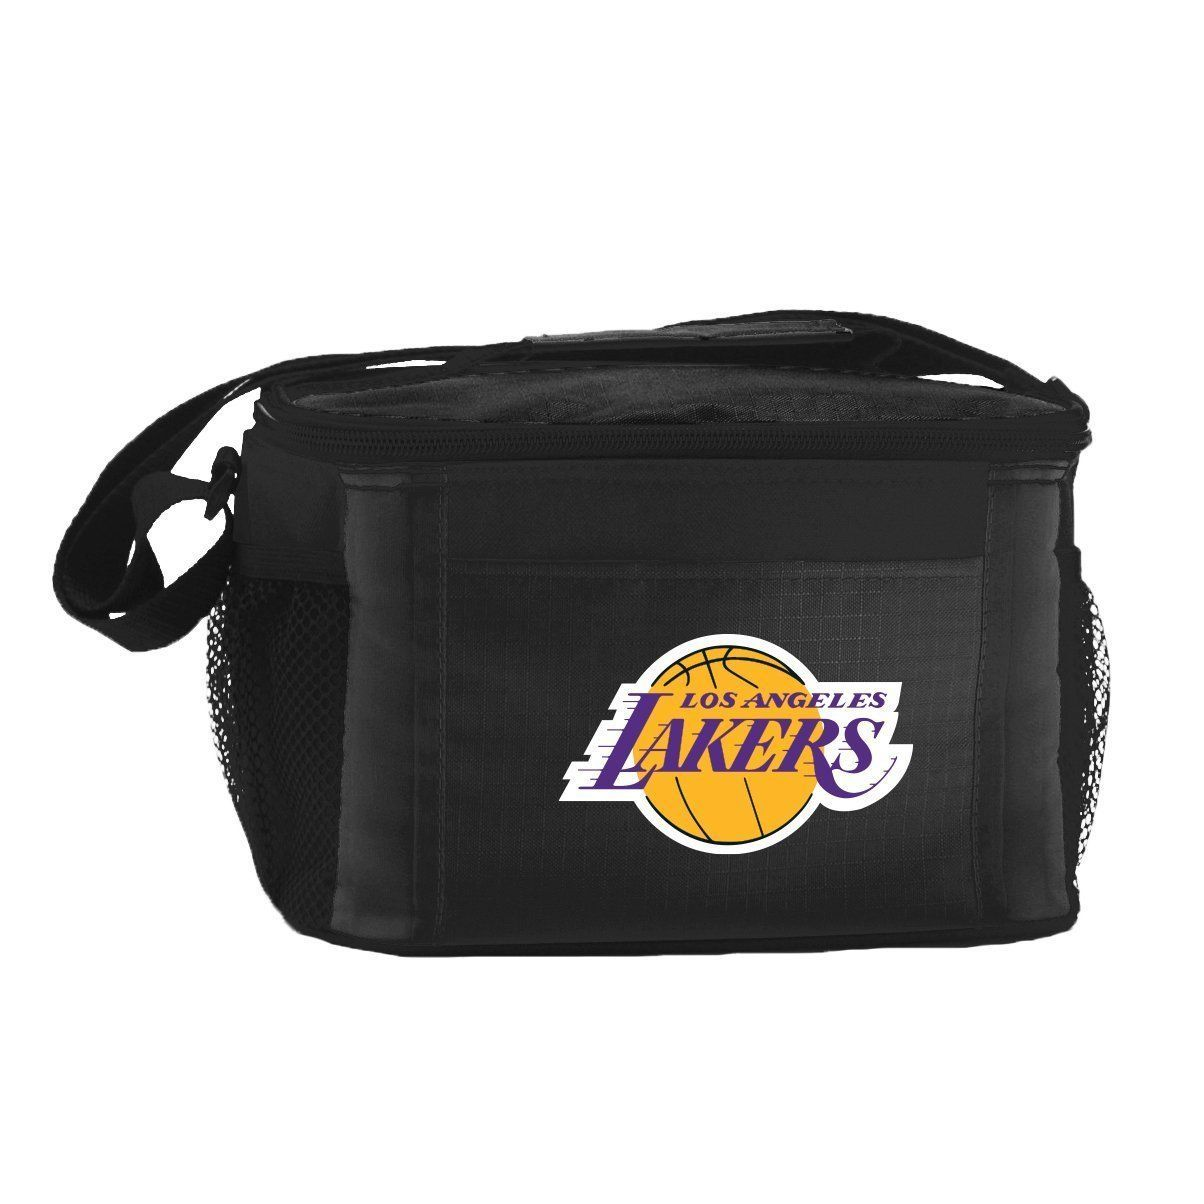 LOS ANGELES LAKERS LUNCH TOTE 6 PK BEER SODA TEAM LOGO KOOLER BAG NBA BASKETBALL